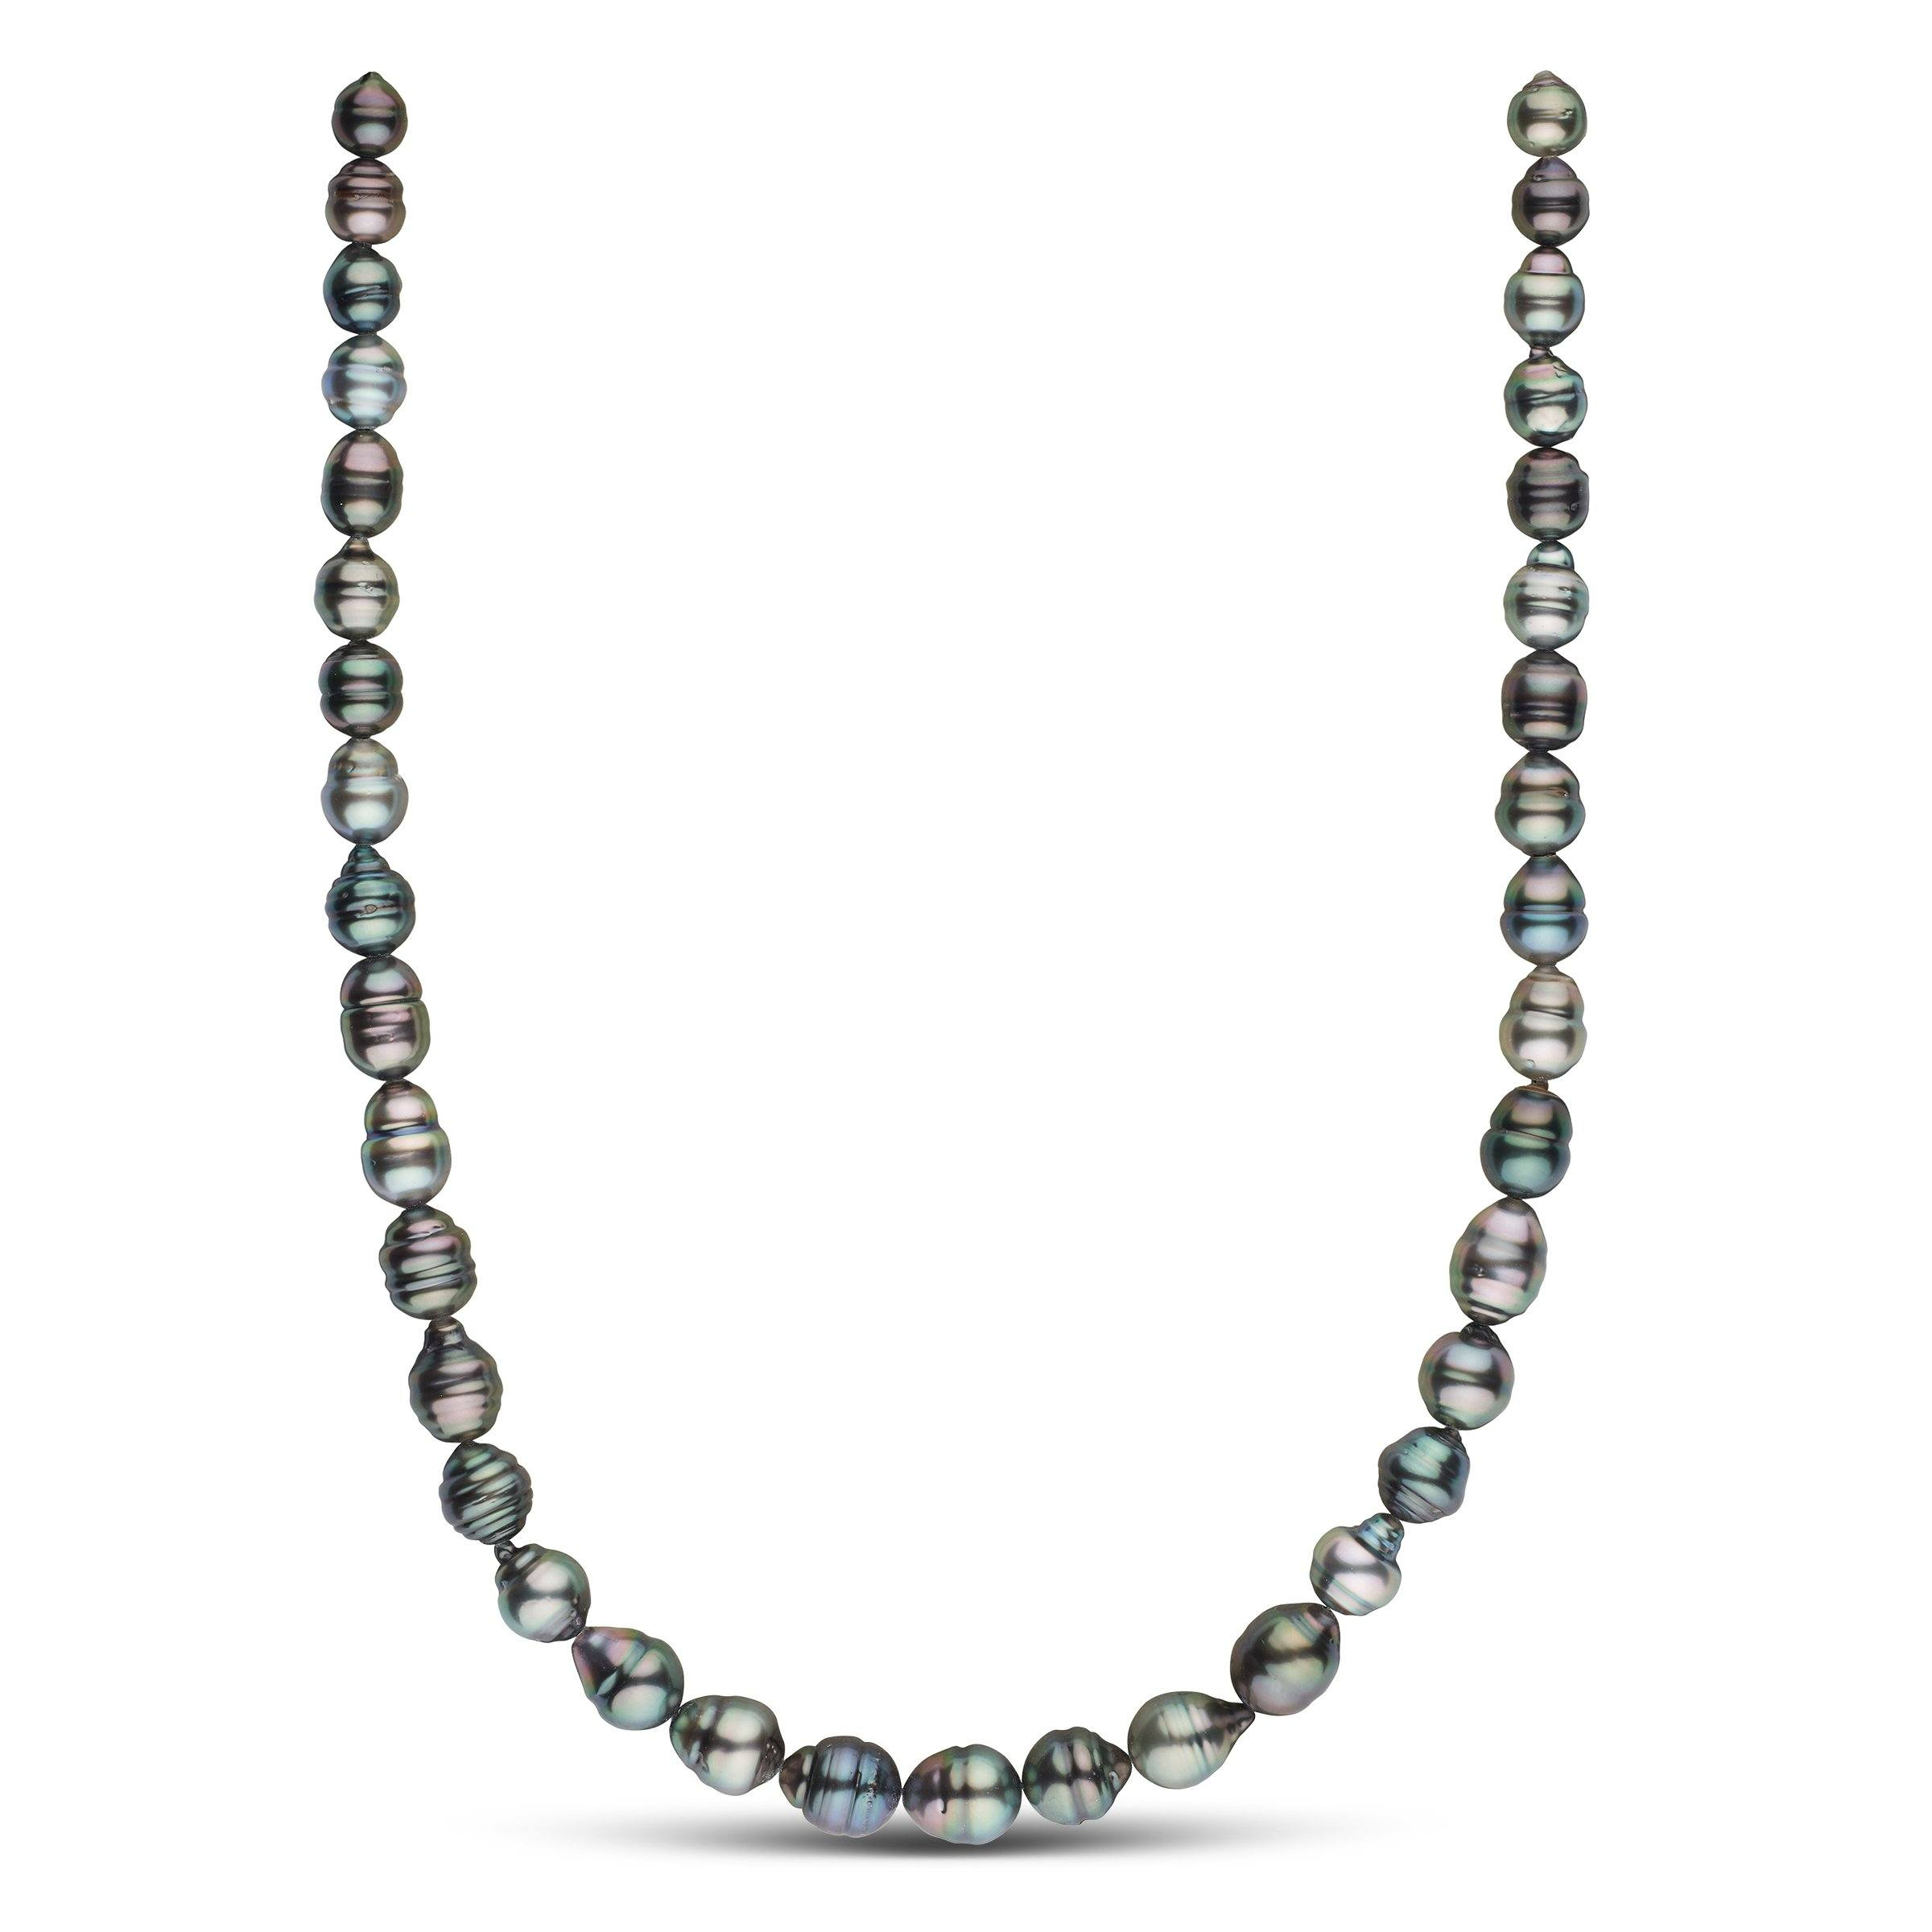 8.0-10.4 mm AA+ Tahitian Baroque Pearl Necklace